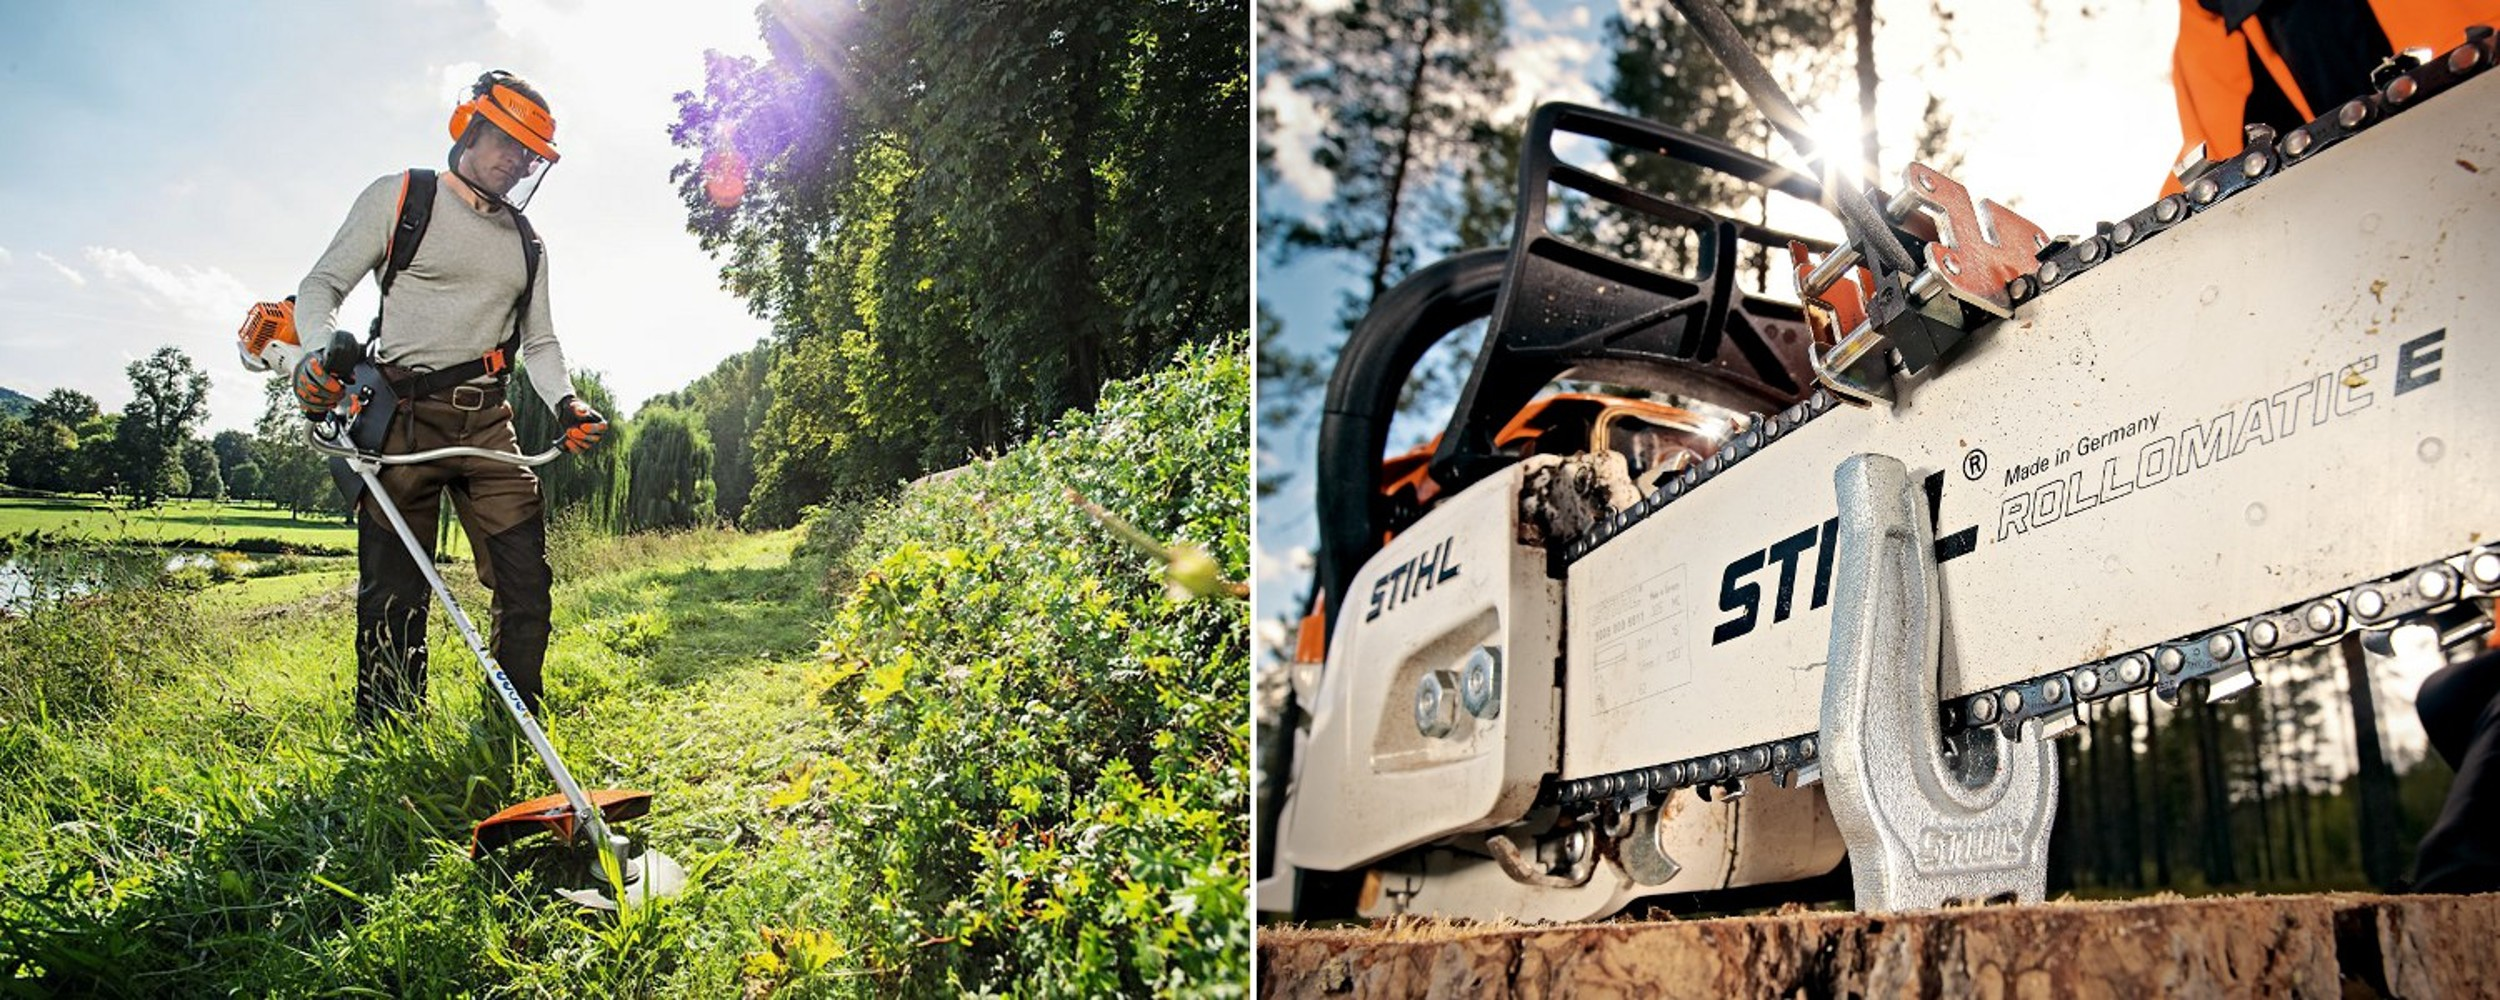 stihl brushcutter and chainsaws